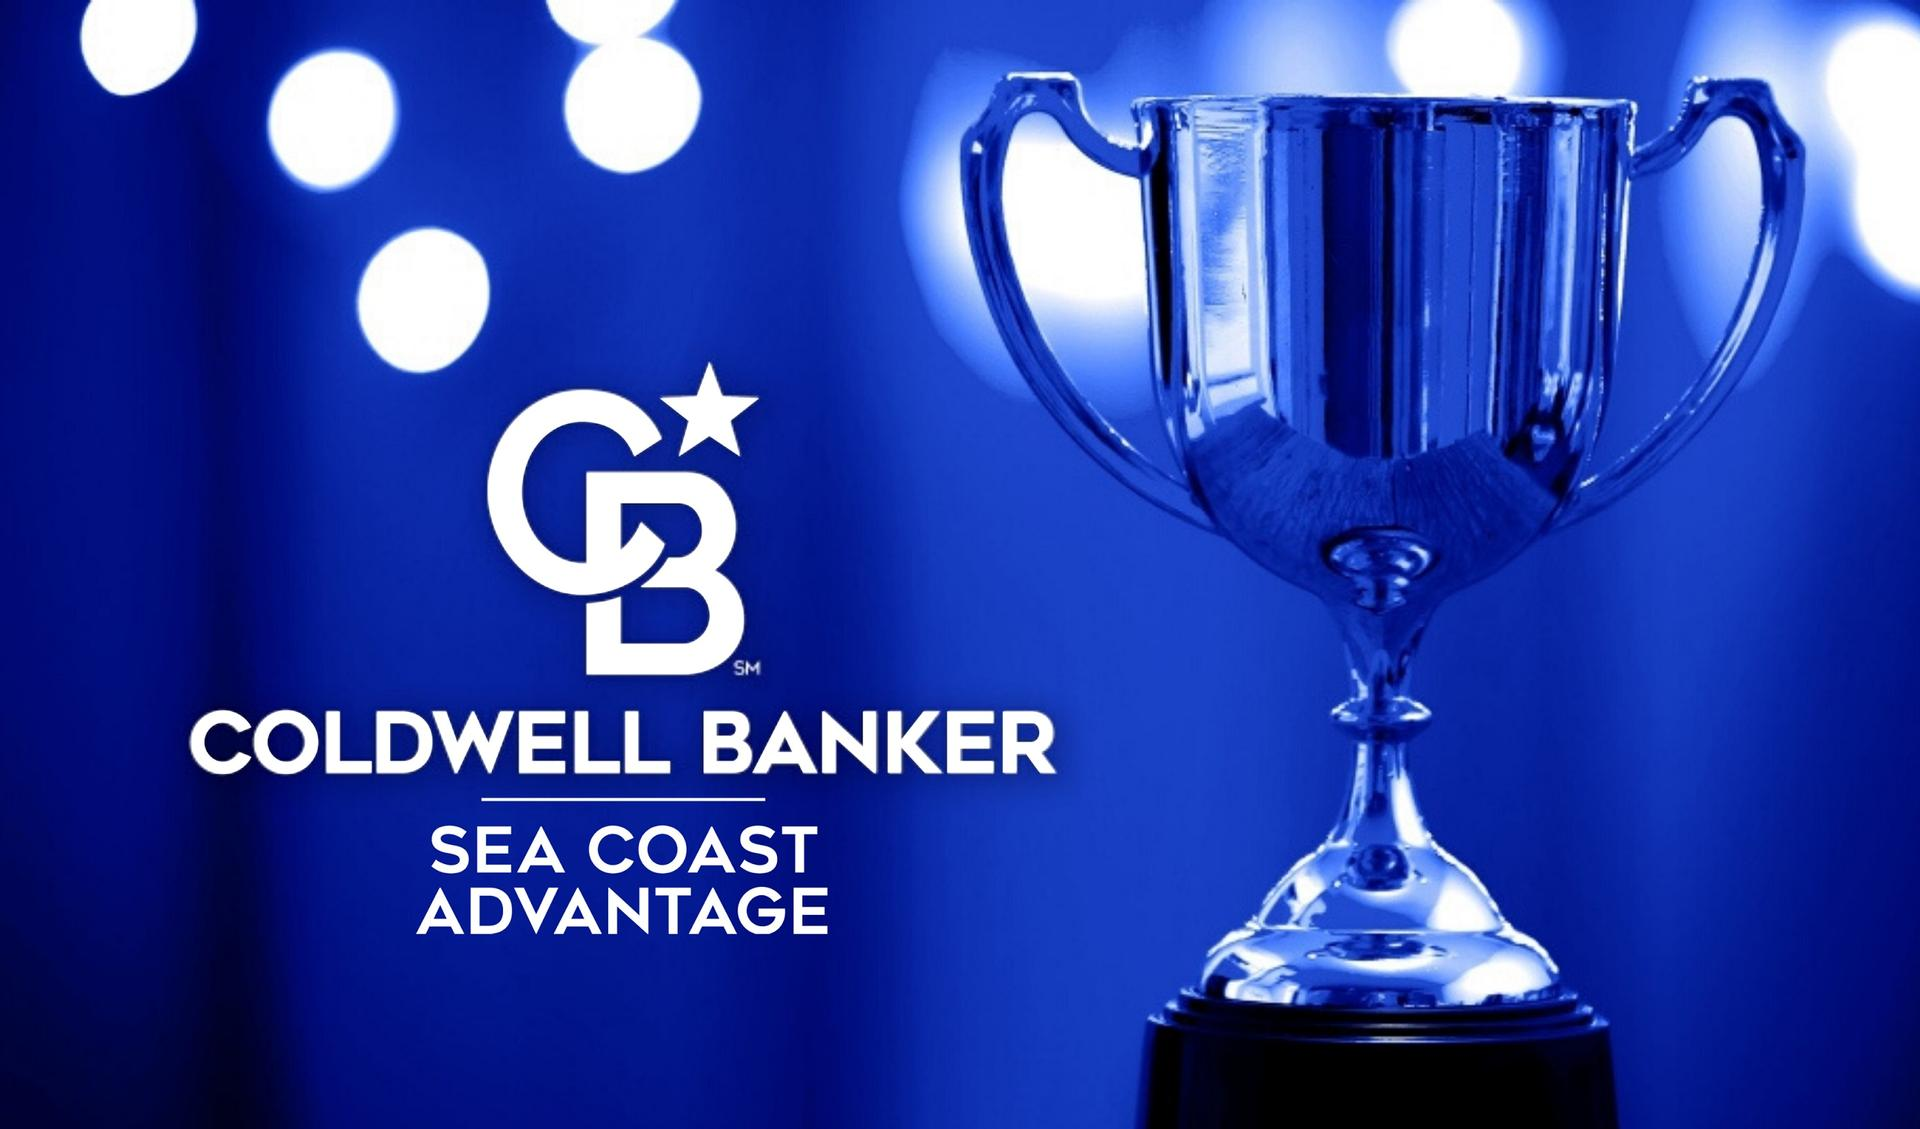 Coldwell Banker Sea Coast Advantage & The Advantage Family of Companies Ranked #1 in North America Main Photo